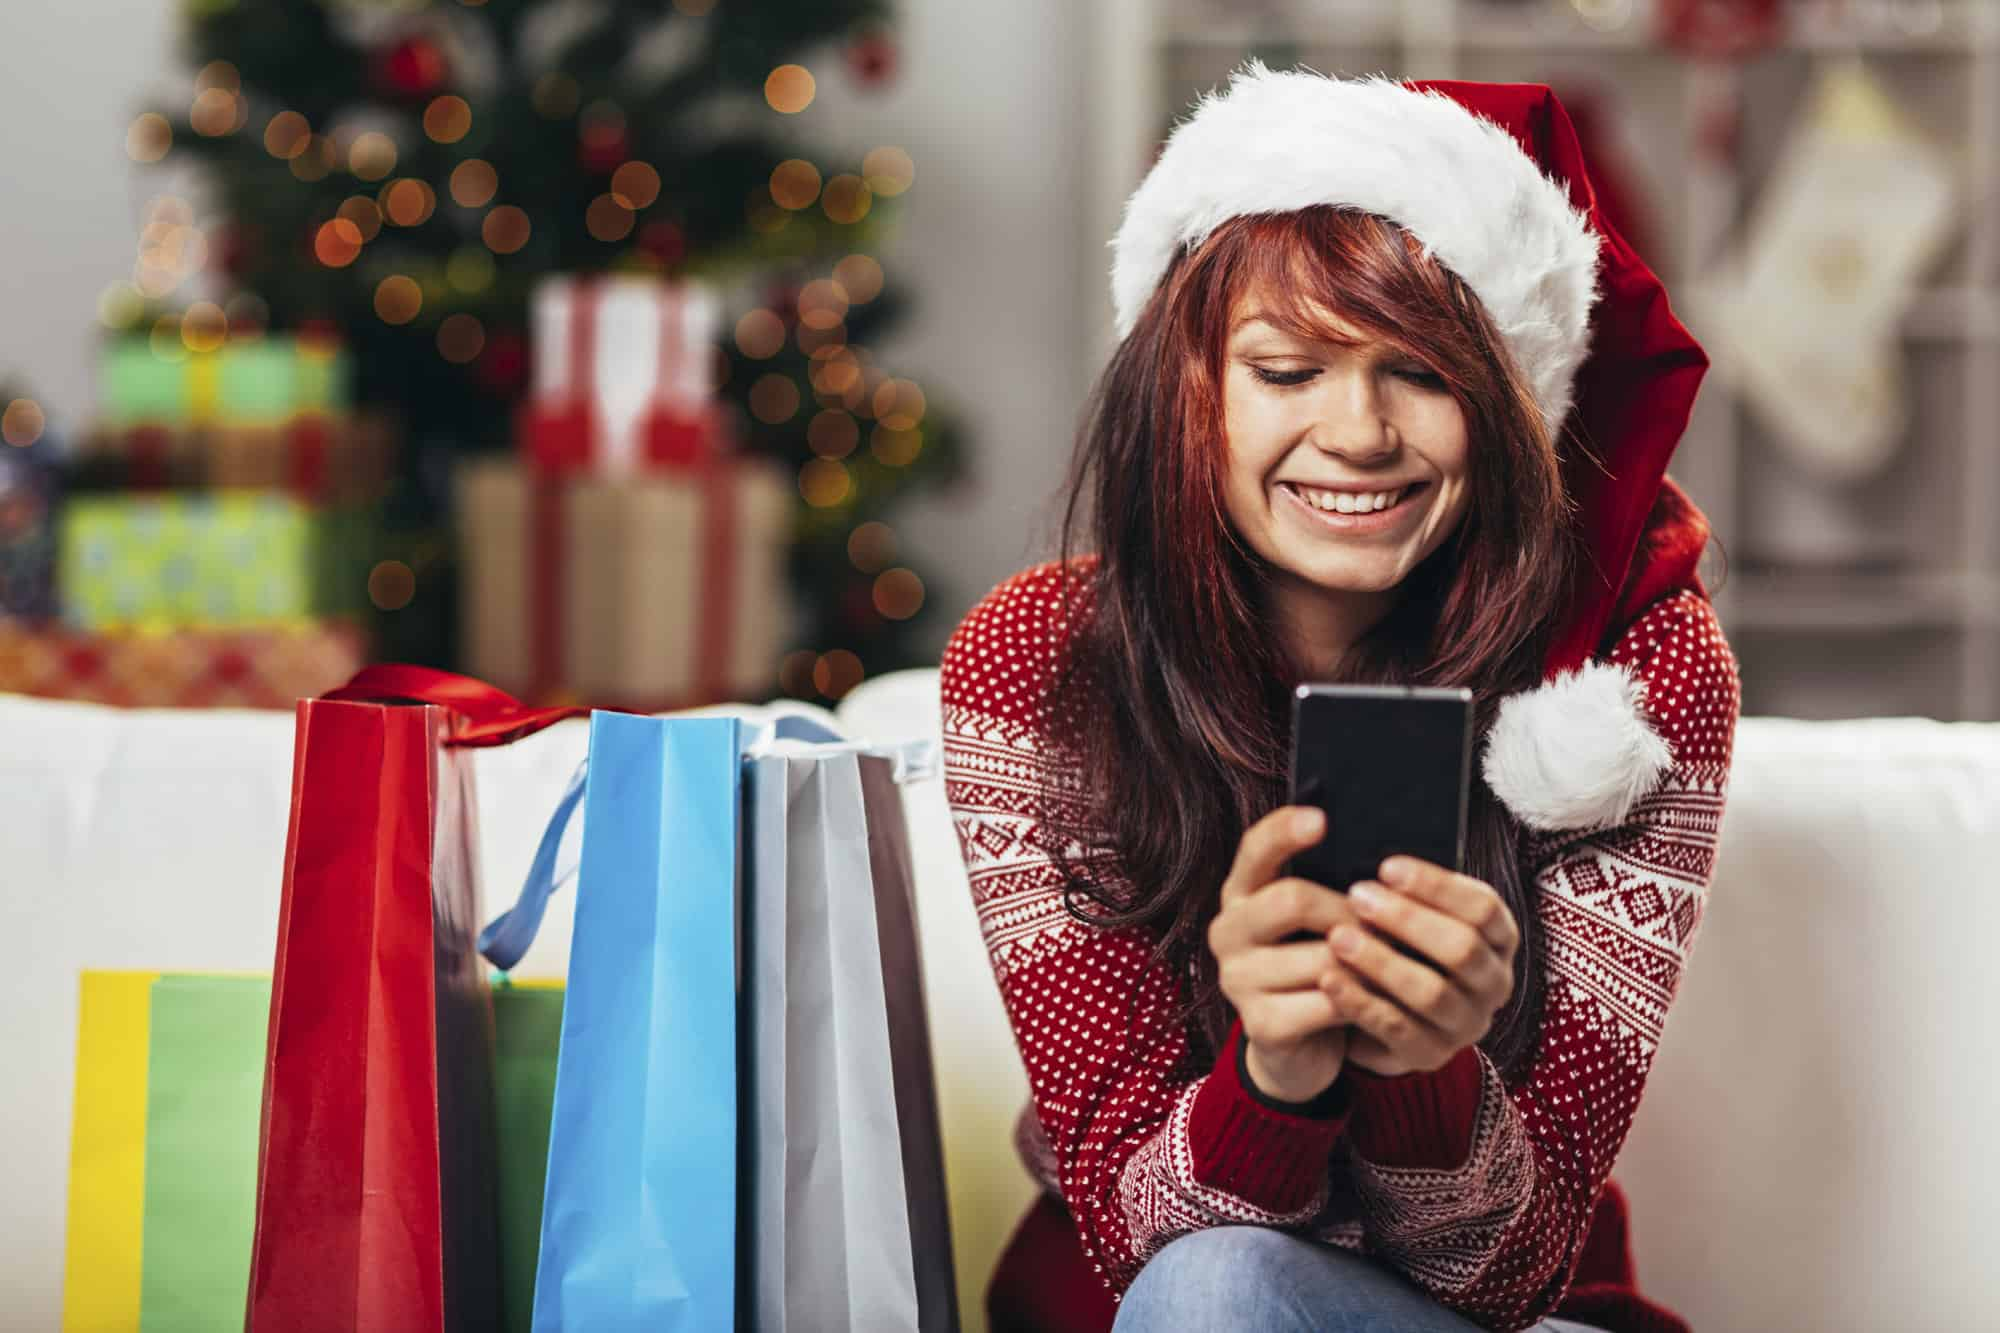 Black Friday deals are limited to in-store offers. You can shop online and on your smartphone